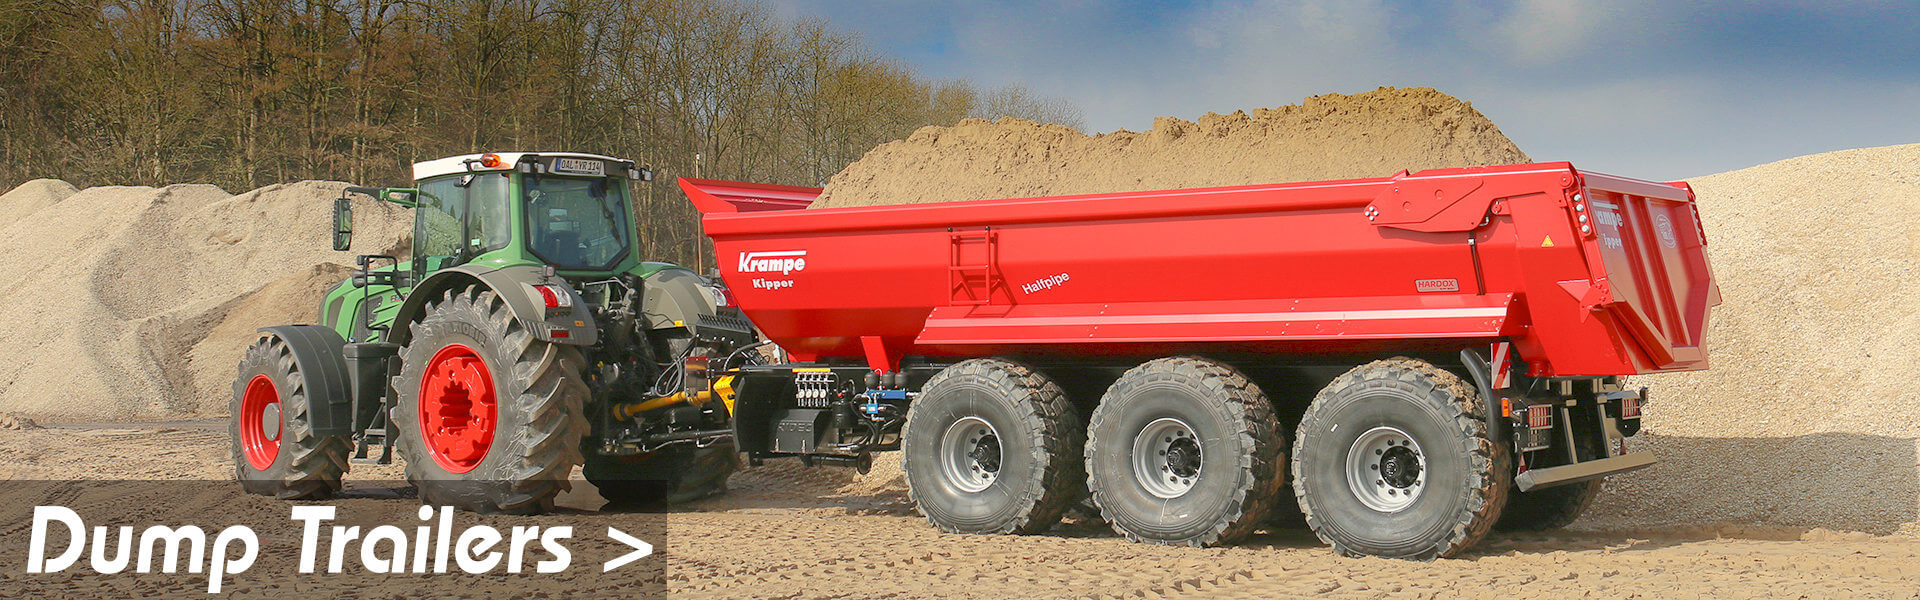 link to dump trailers page image of krampe half pipe triaxle